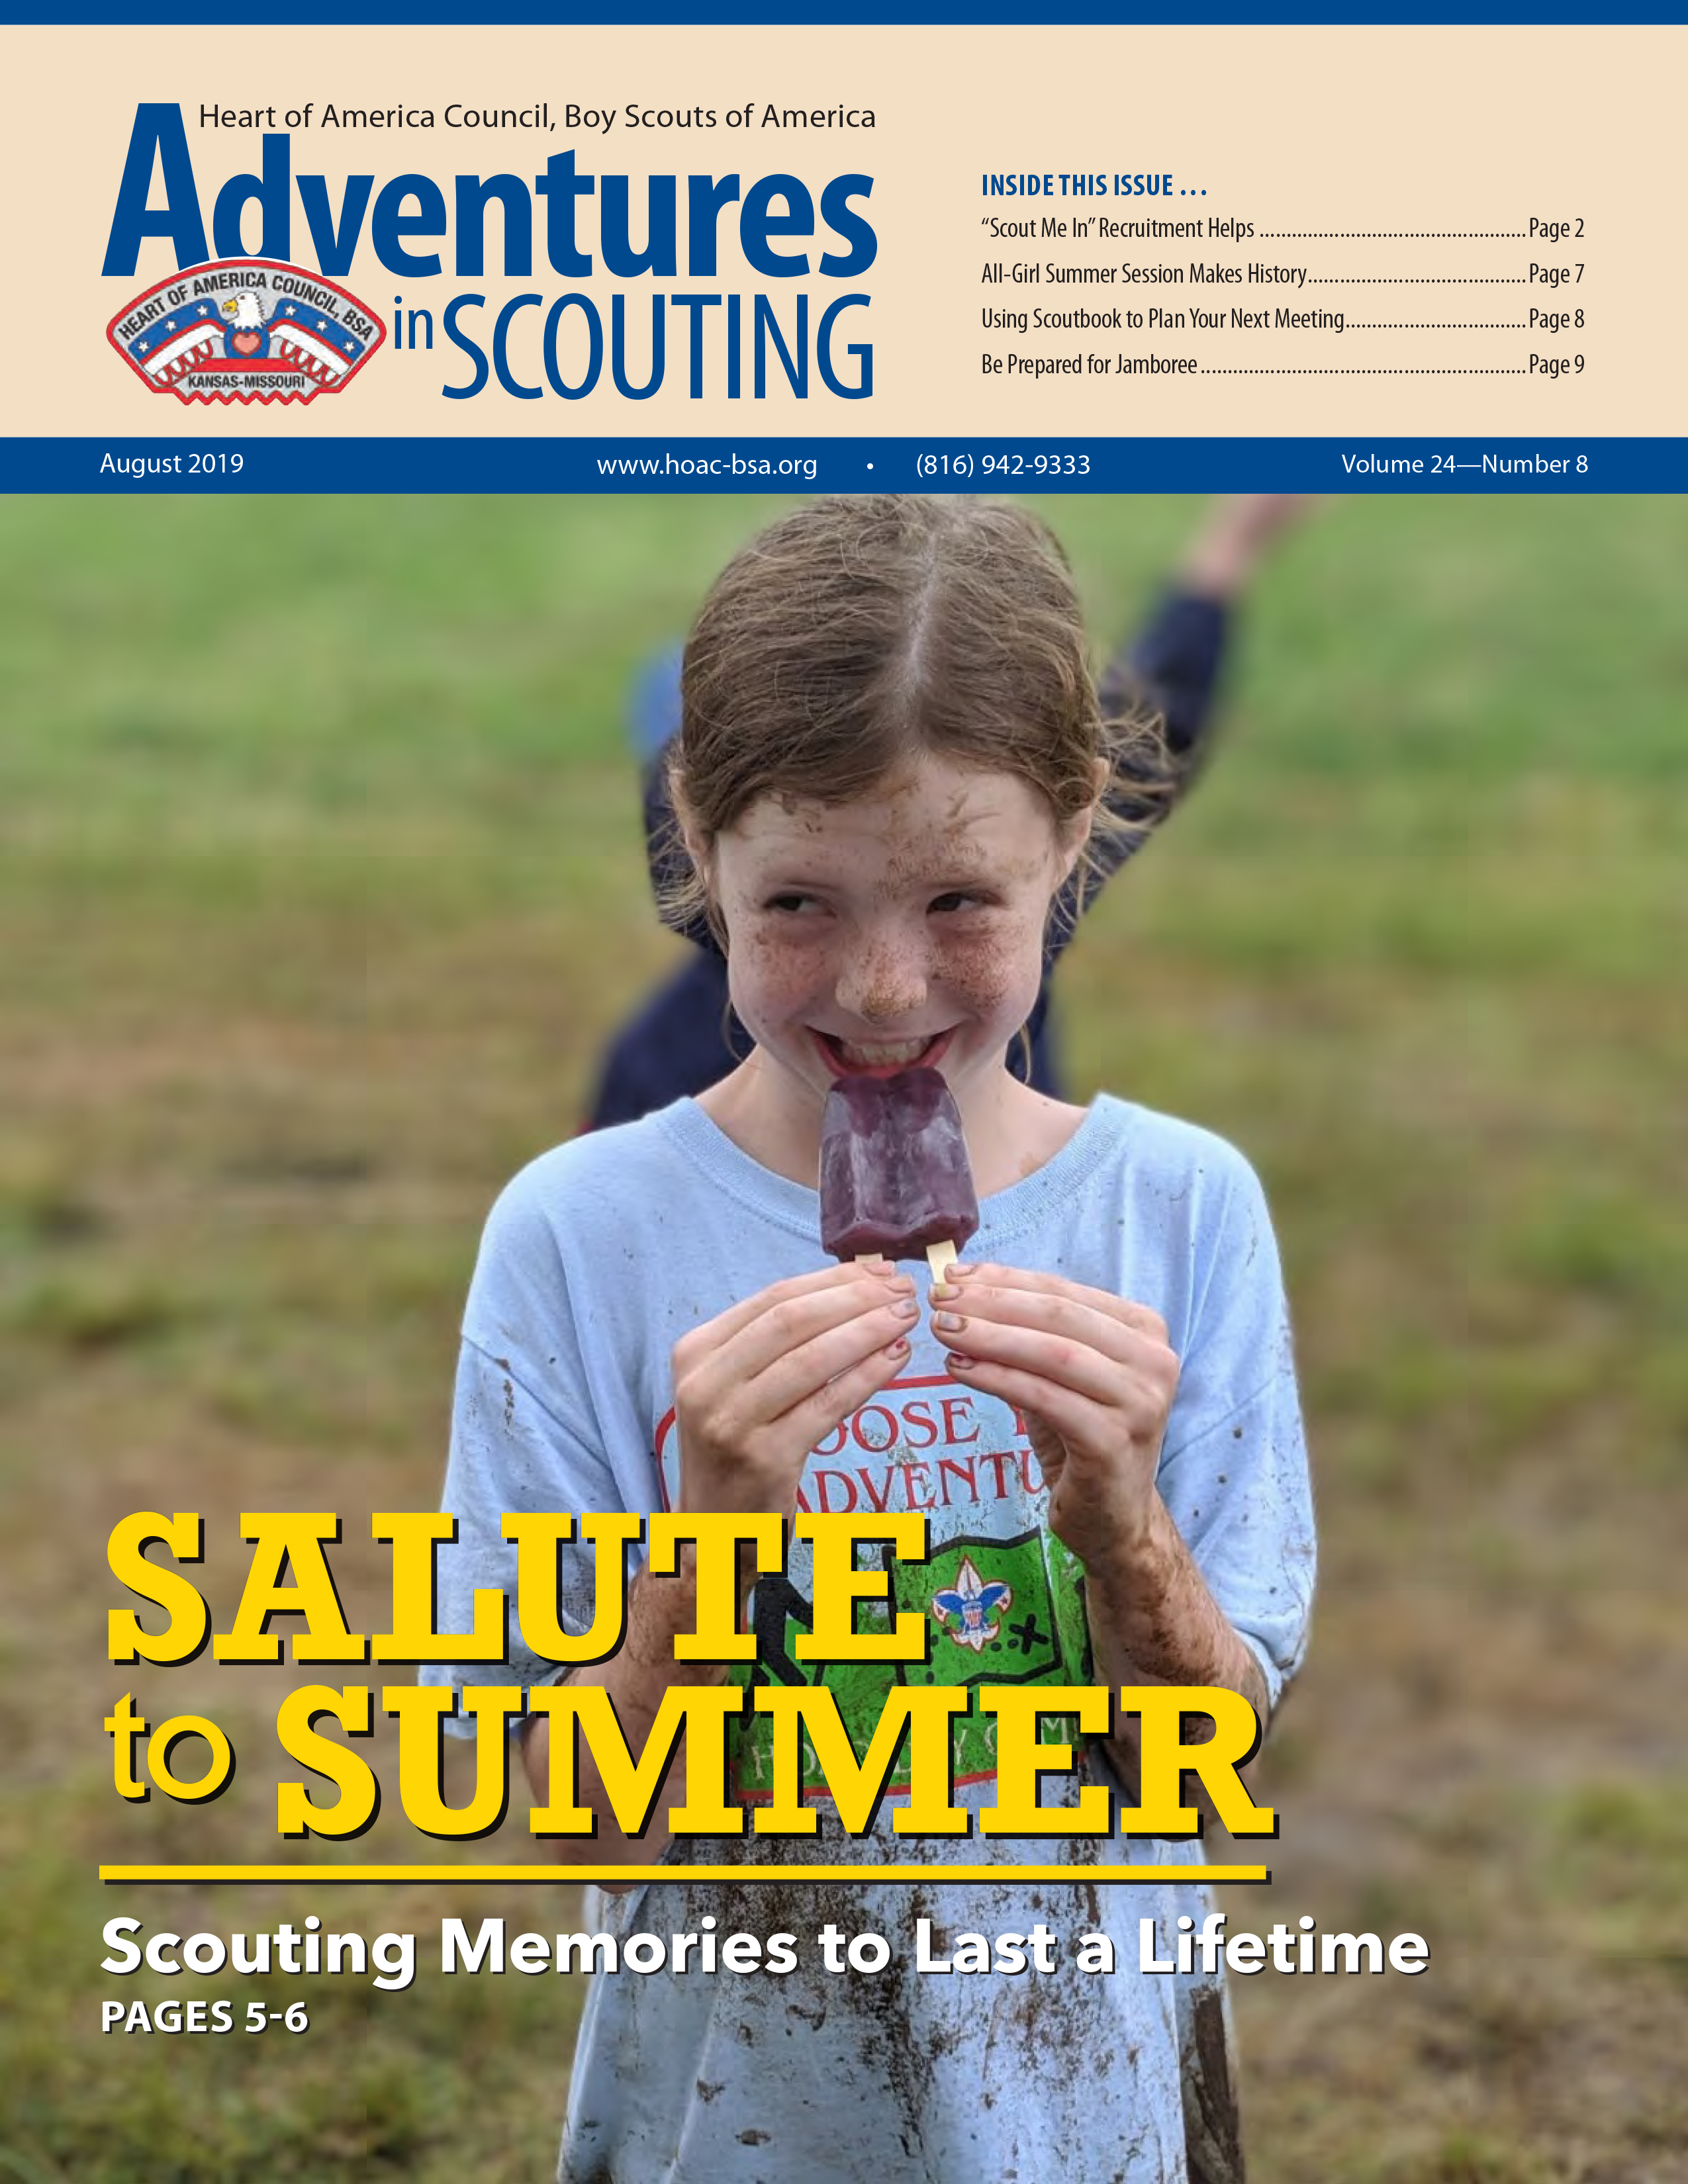 August Adventures in Scouting Newsletter